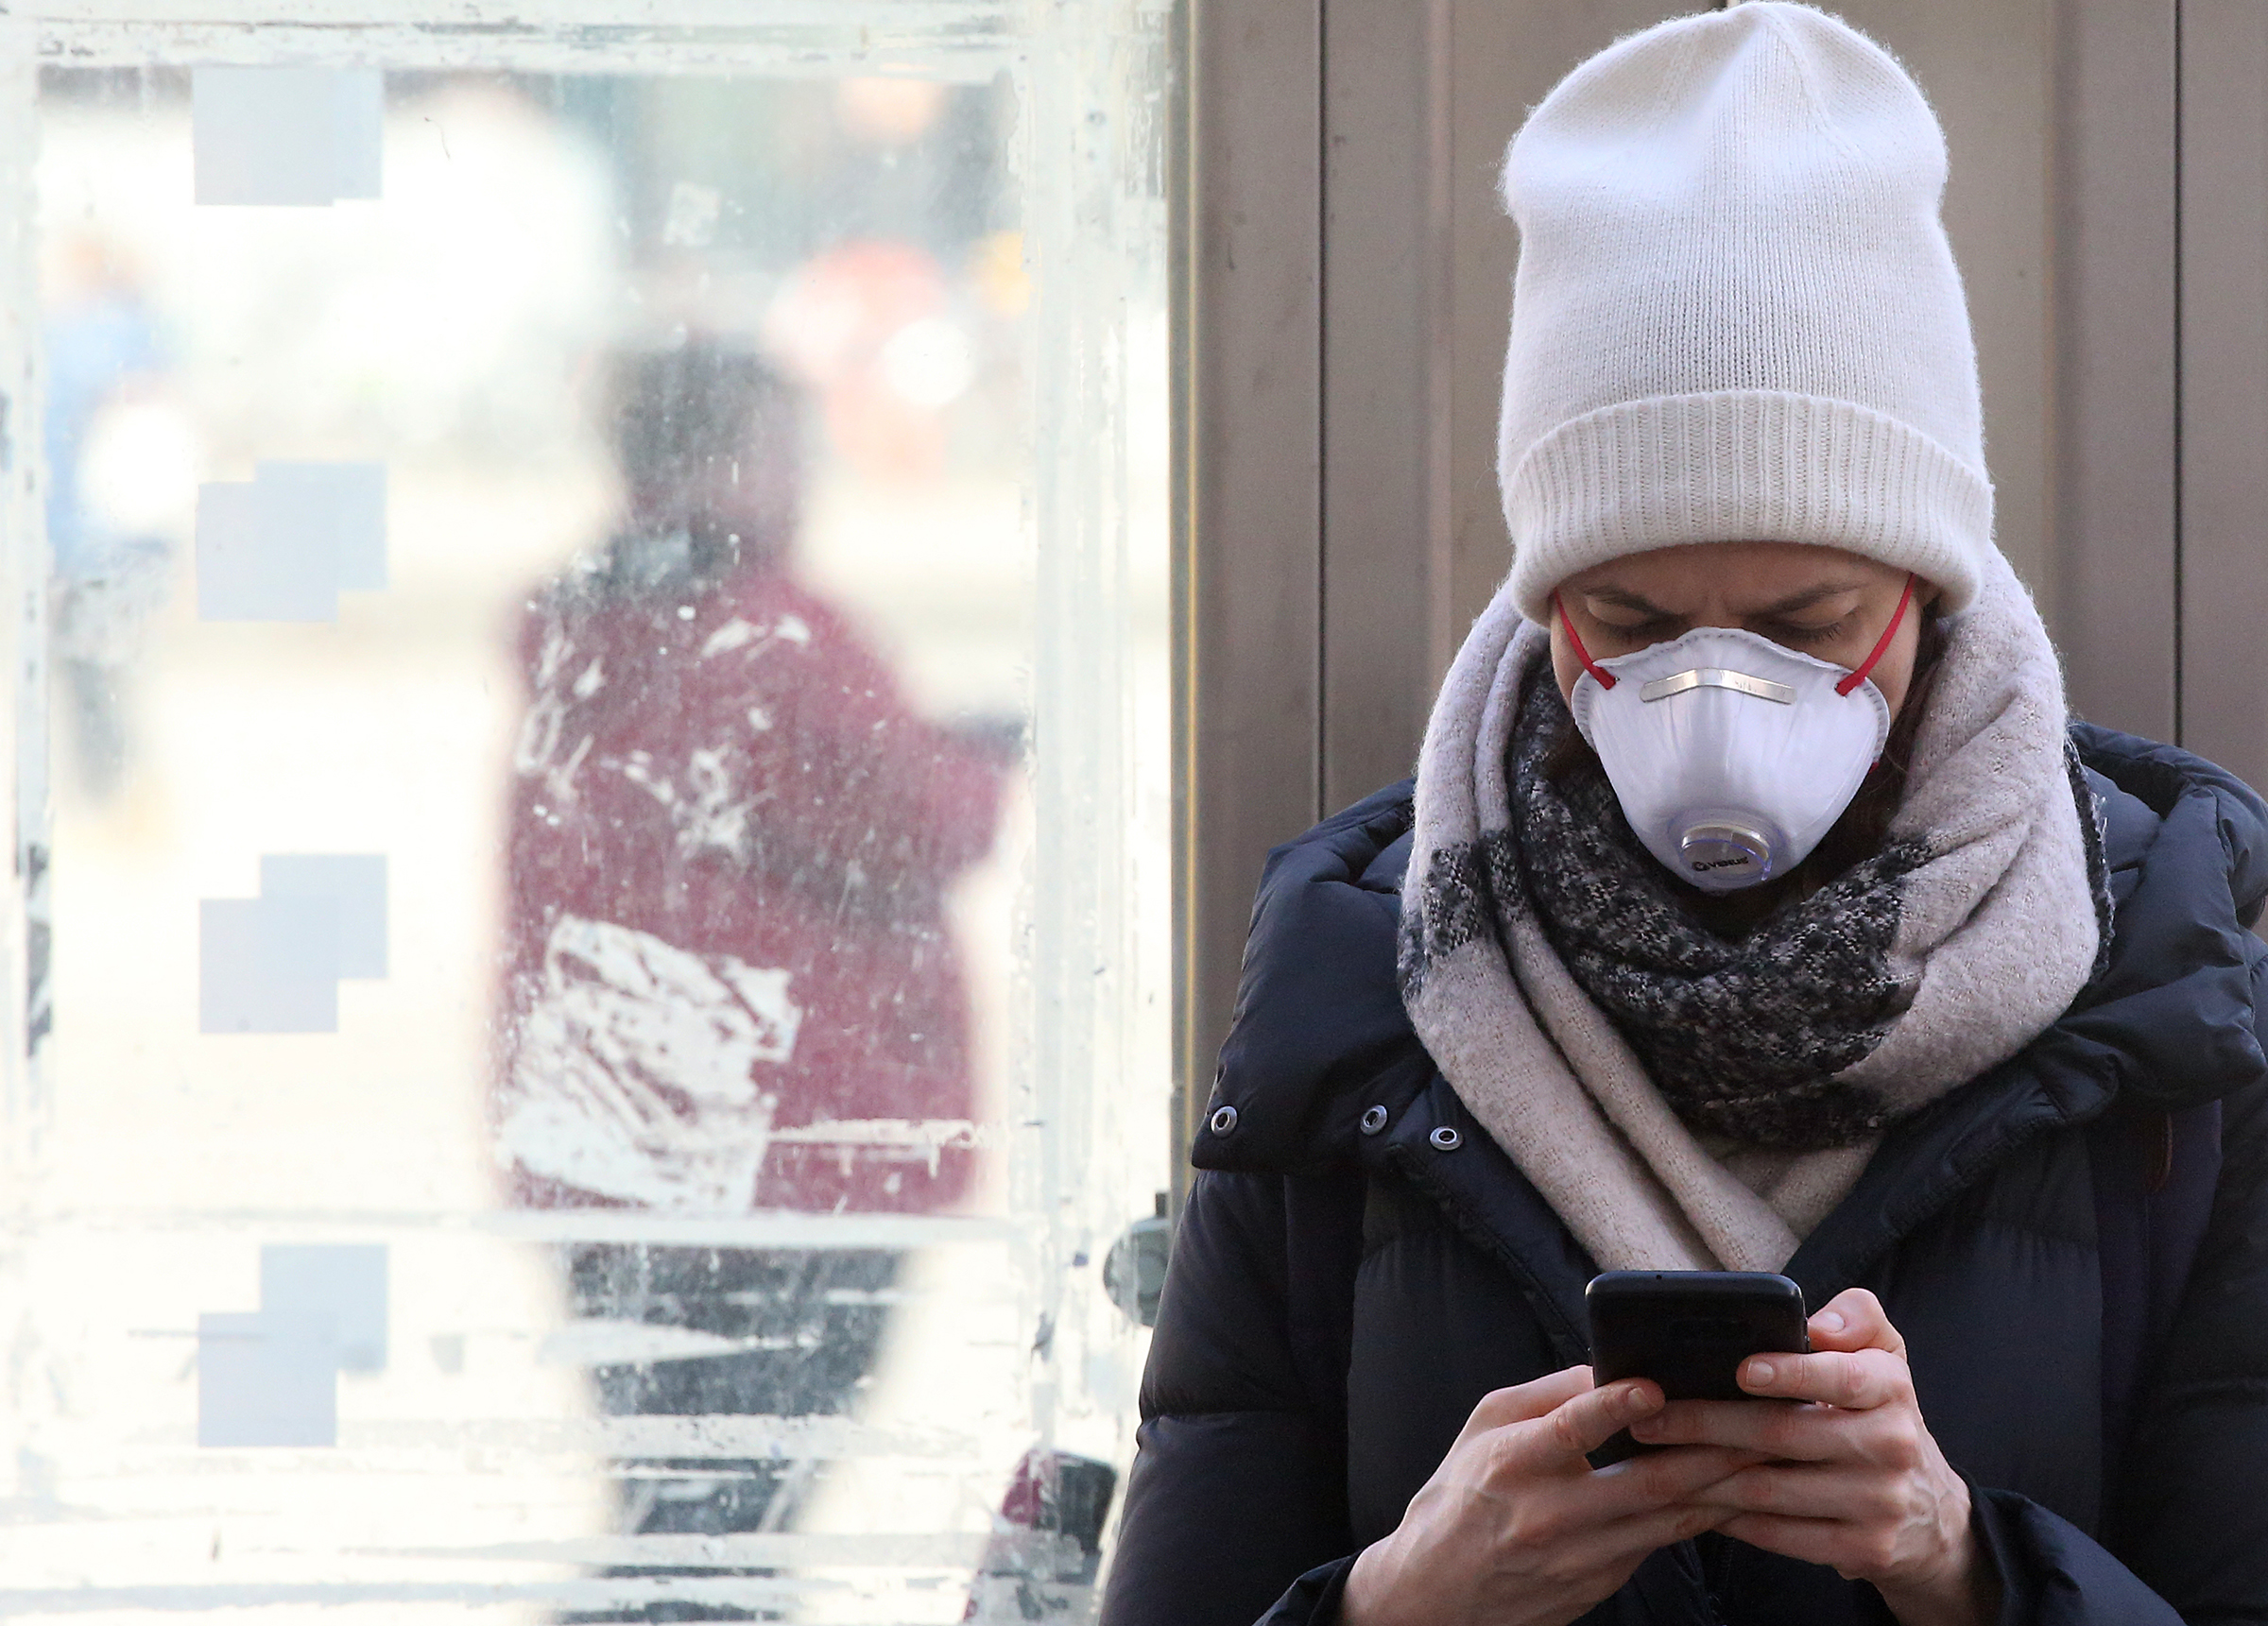 A young woman wearing a mask uses her smartphone to obtain information on the news situation regarding the corona virus at Alexanderplatz in Berlin on March 16, 2020.